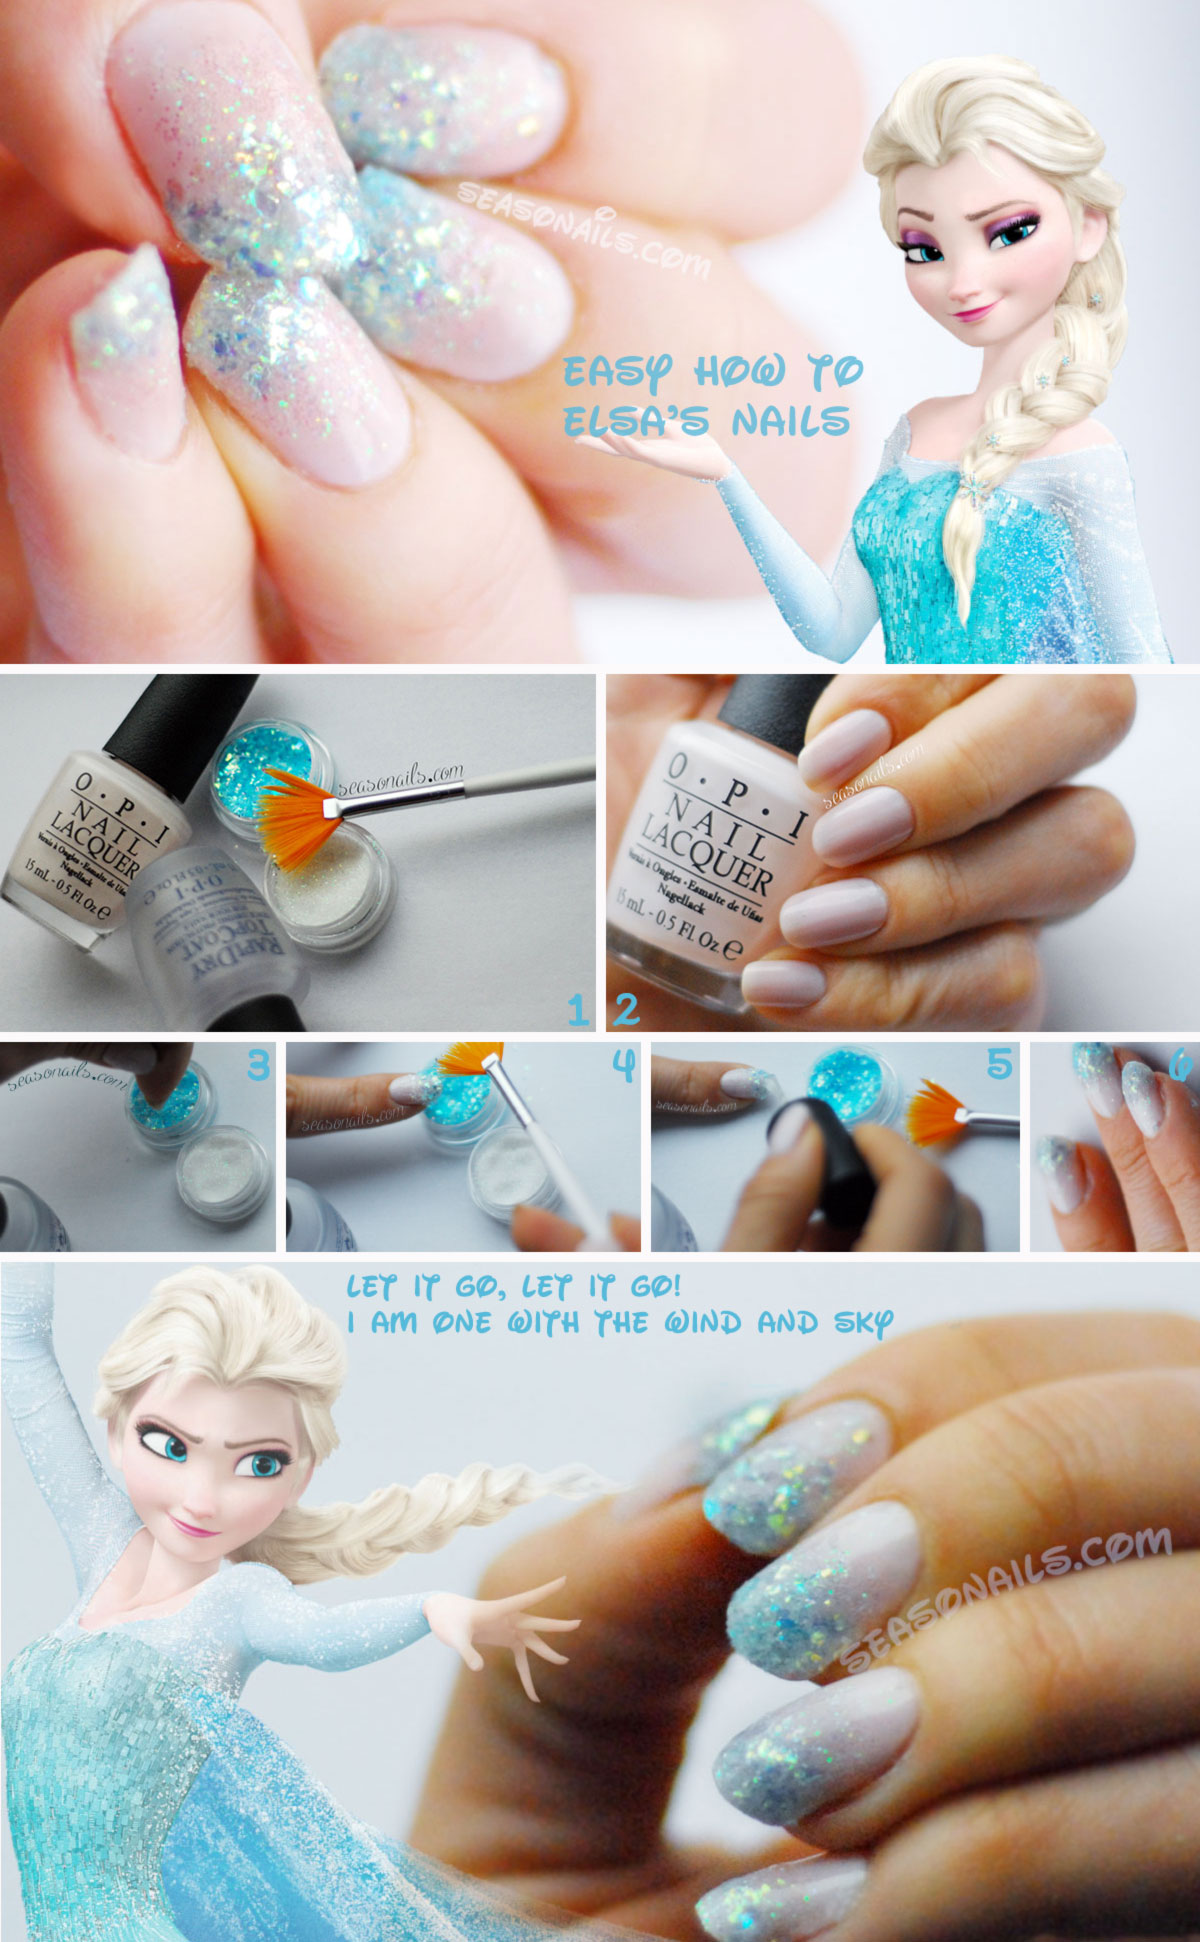 Easy Nail Art For Winter: Frozen Nails - Seasonails